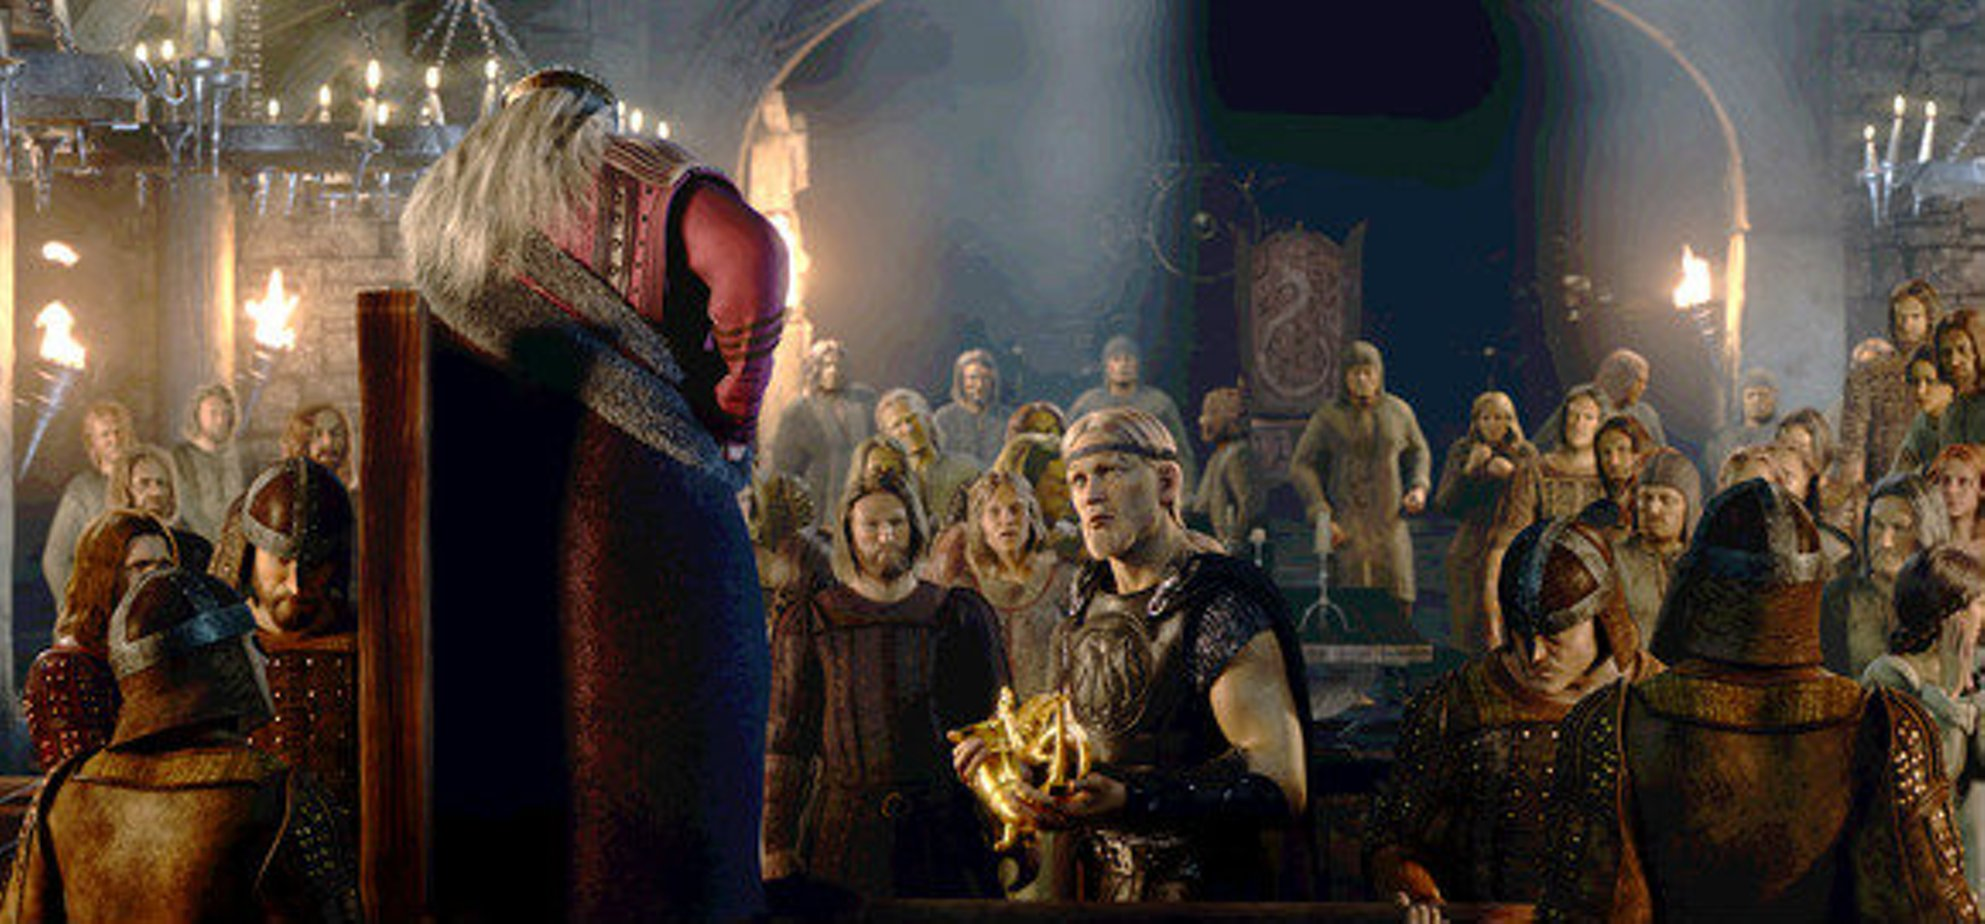 the character of the tragic hero in the story of beowulf 9/4 marie de france question 10:50 beloved hero in beowulf's story there is no romance and the story ends with beowulf's death as a tragic hero that.